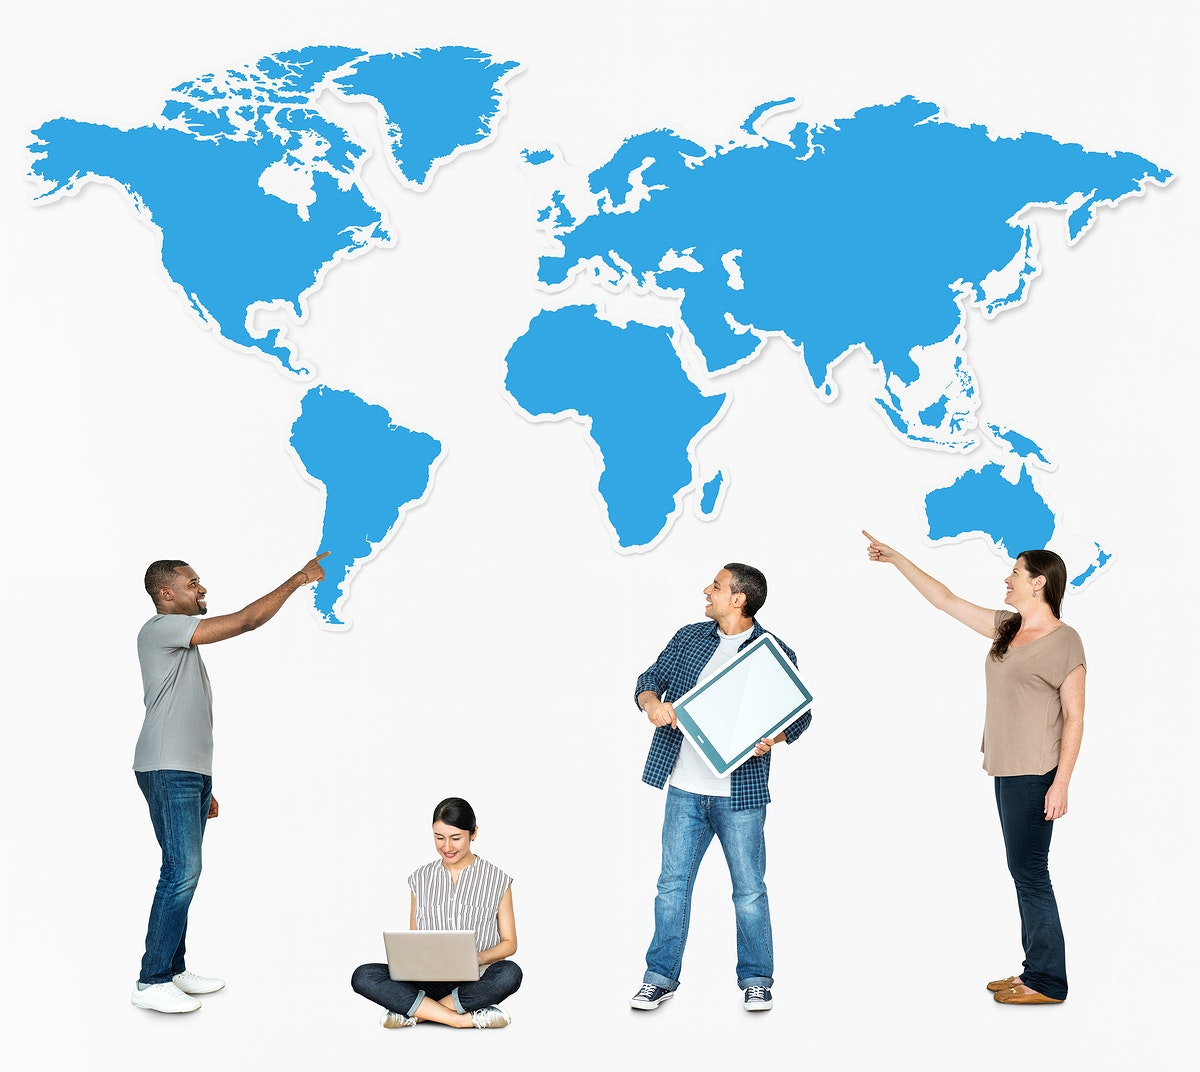 Diverse people pointing at a map